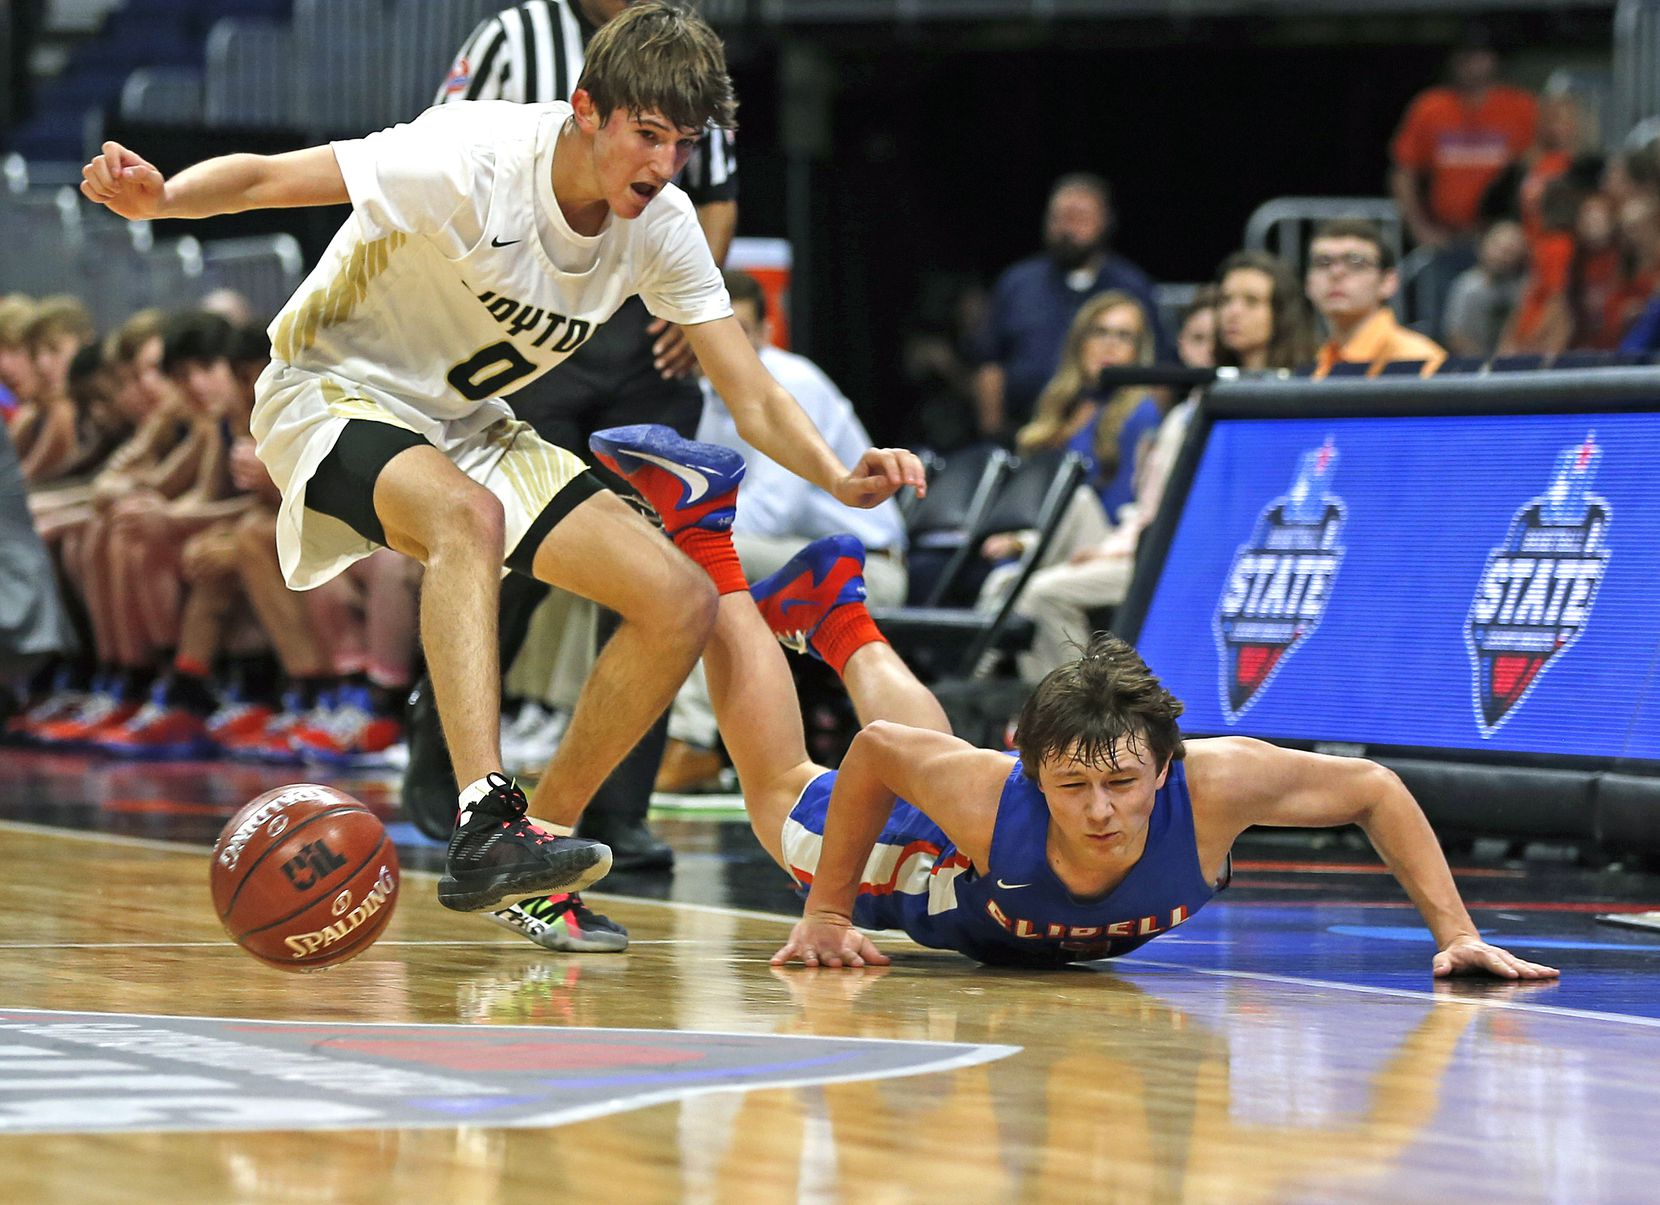 Slidell guard Brock Harwell #3 hits the court on an attempted steal. Slidell defeated Jayton 45-28 in a Class 1A semifinal game on Thursday, March 12, 2020 at the Alamodome.